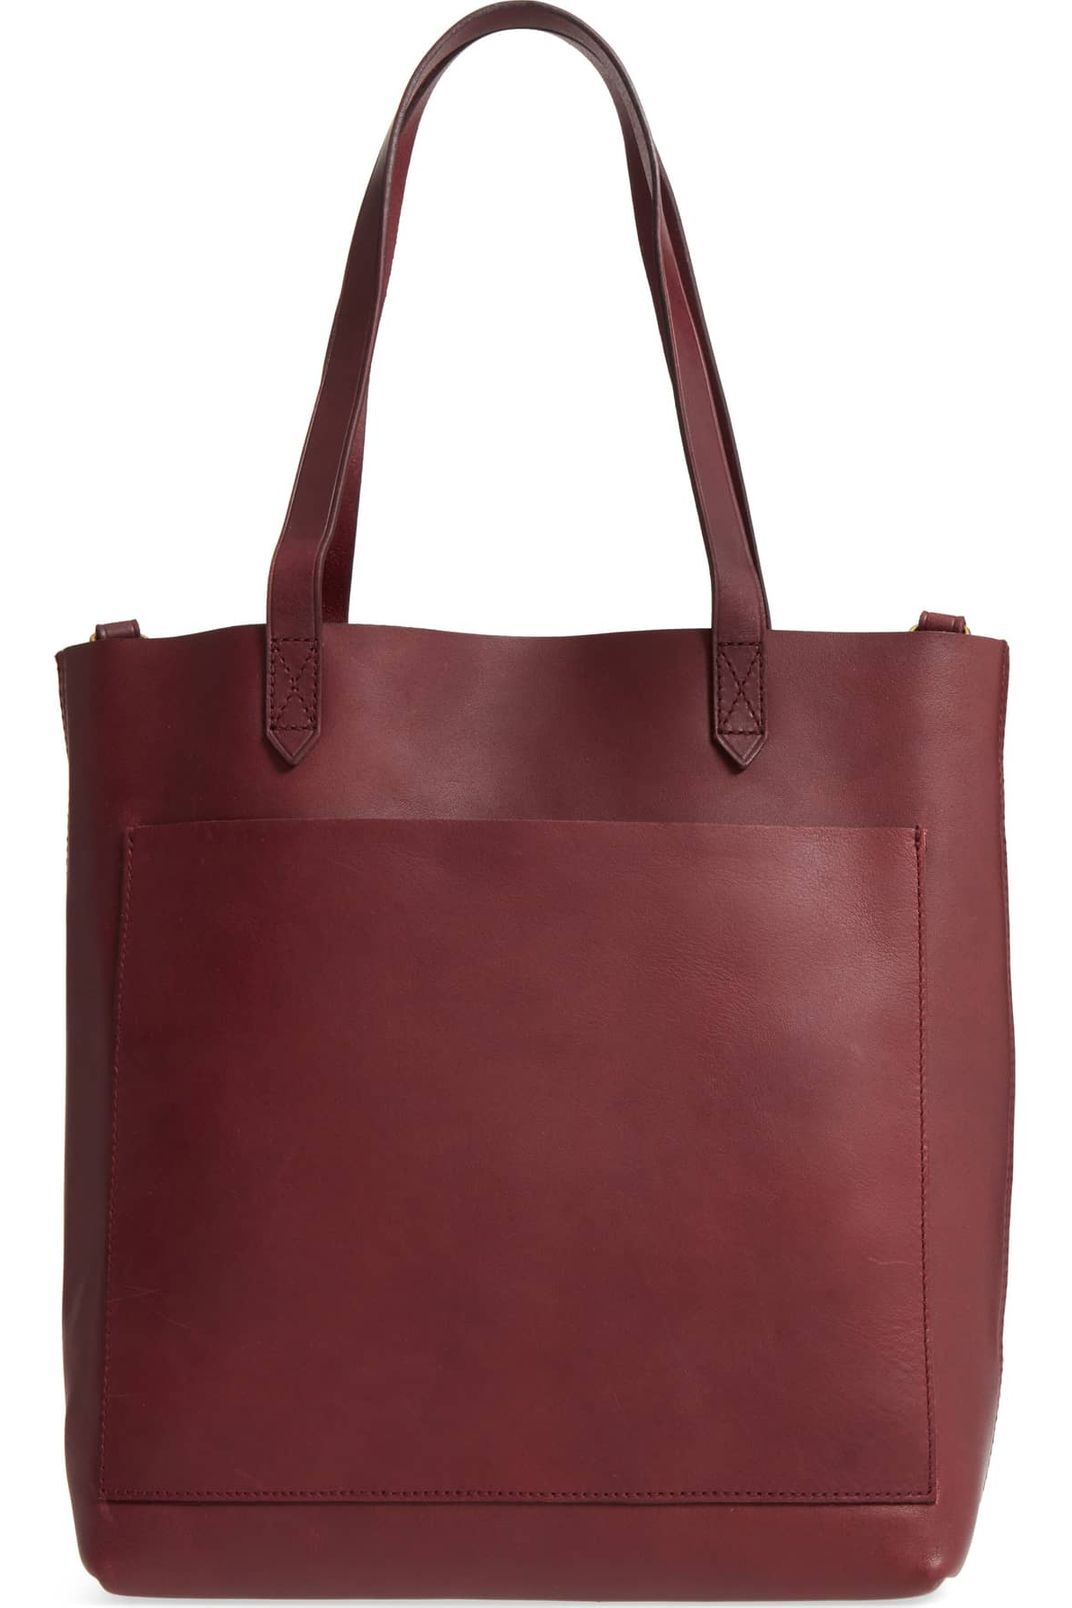 f453525271d3 Madewell Medium Leather Transport Tote